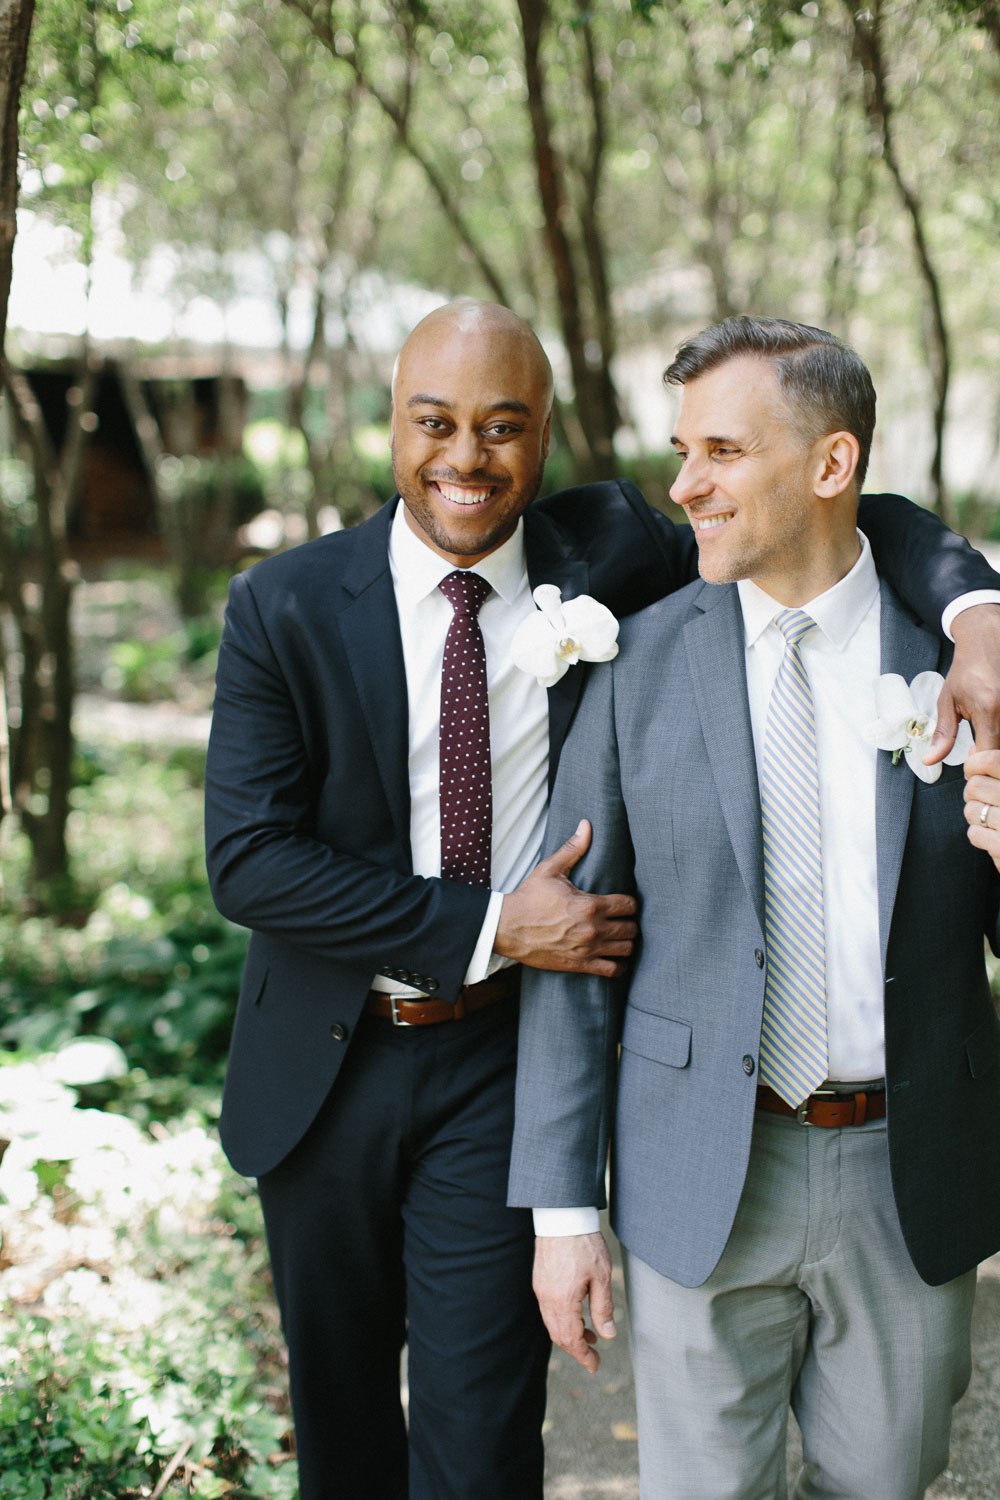 decatur_atlanta_courthouse_elopement_dekalb_gay_weddings-1247.jpg